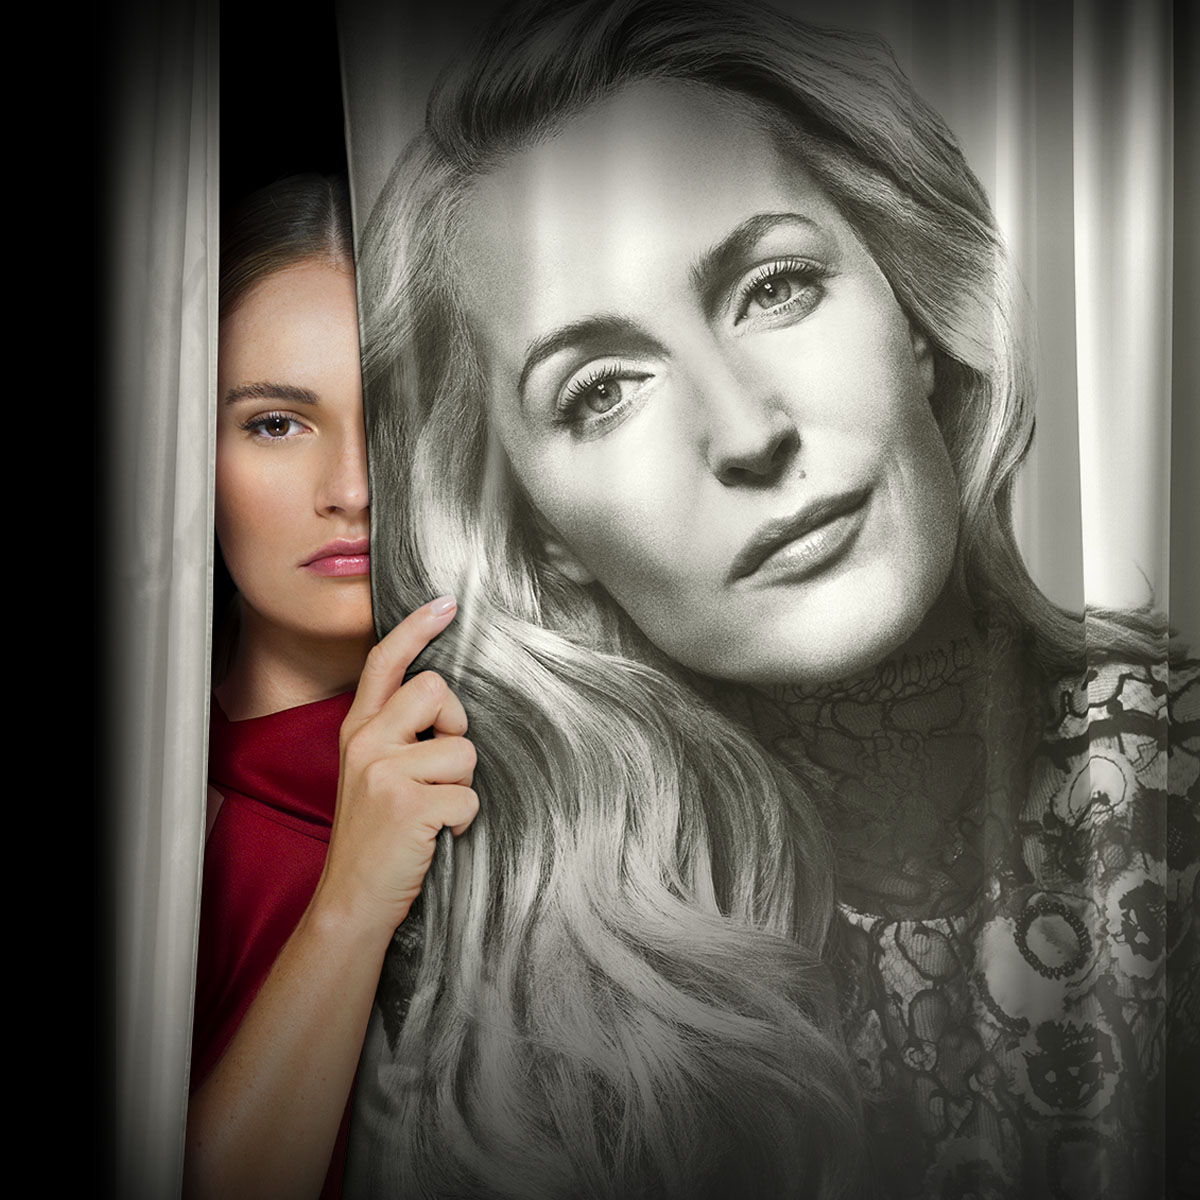 All About Eve publicity image